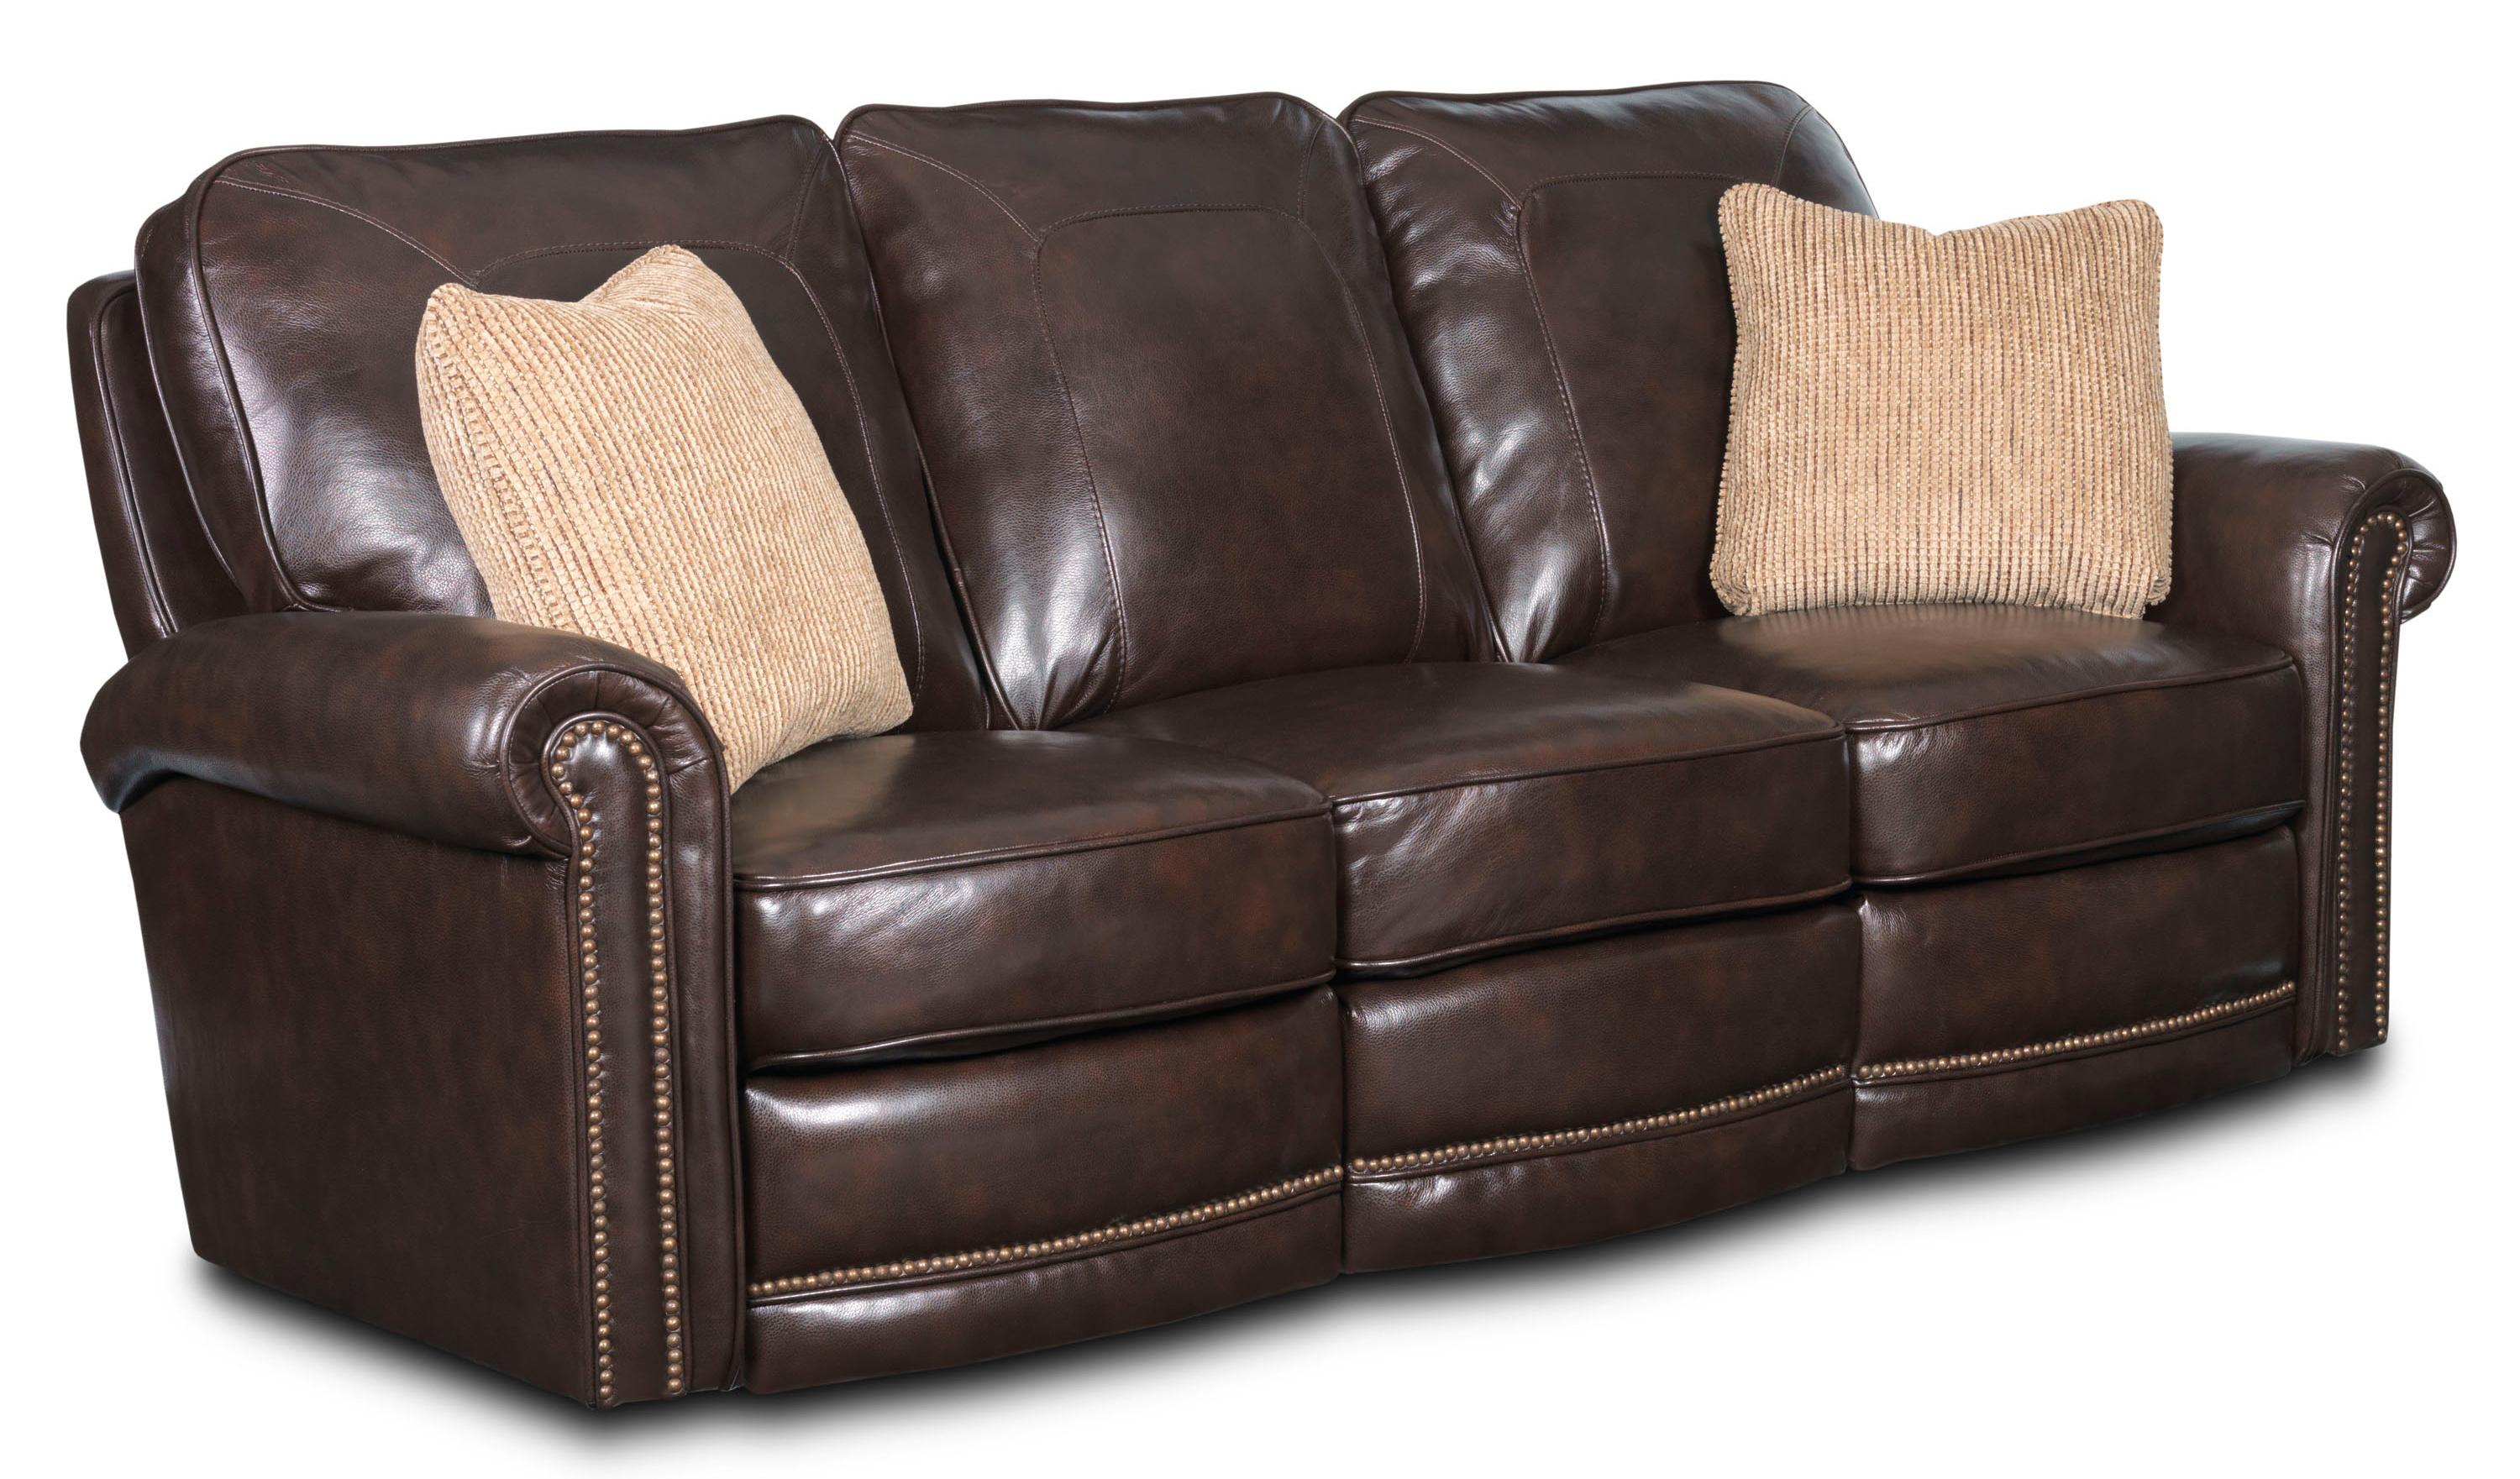 Lane Sofa Recliner Release Handle Scandlecandlecom : products2Fbroyhillfurniture2Fcolor2Fjasmine20258l258 39 b0 from scandlecandle.com size 3000 x 1761 jpeg 503kB